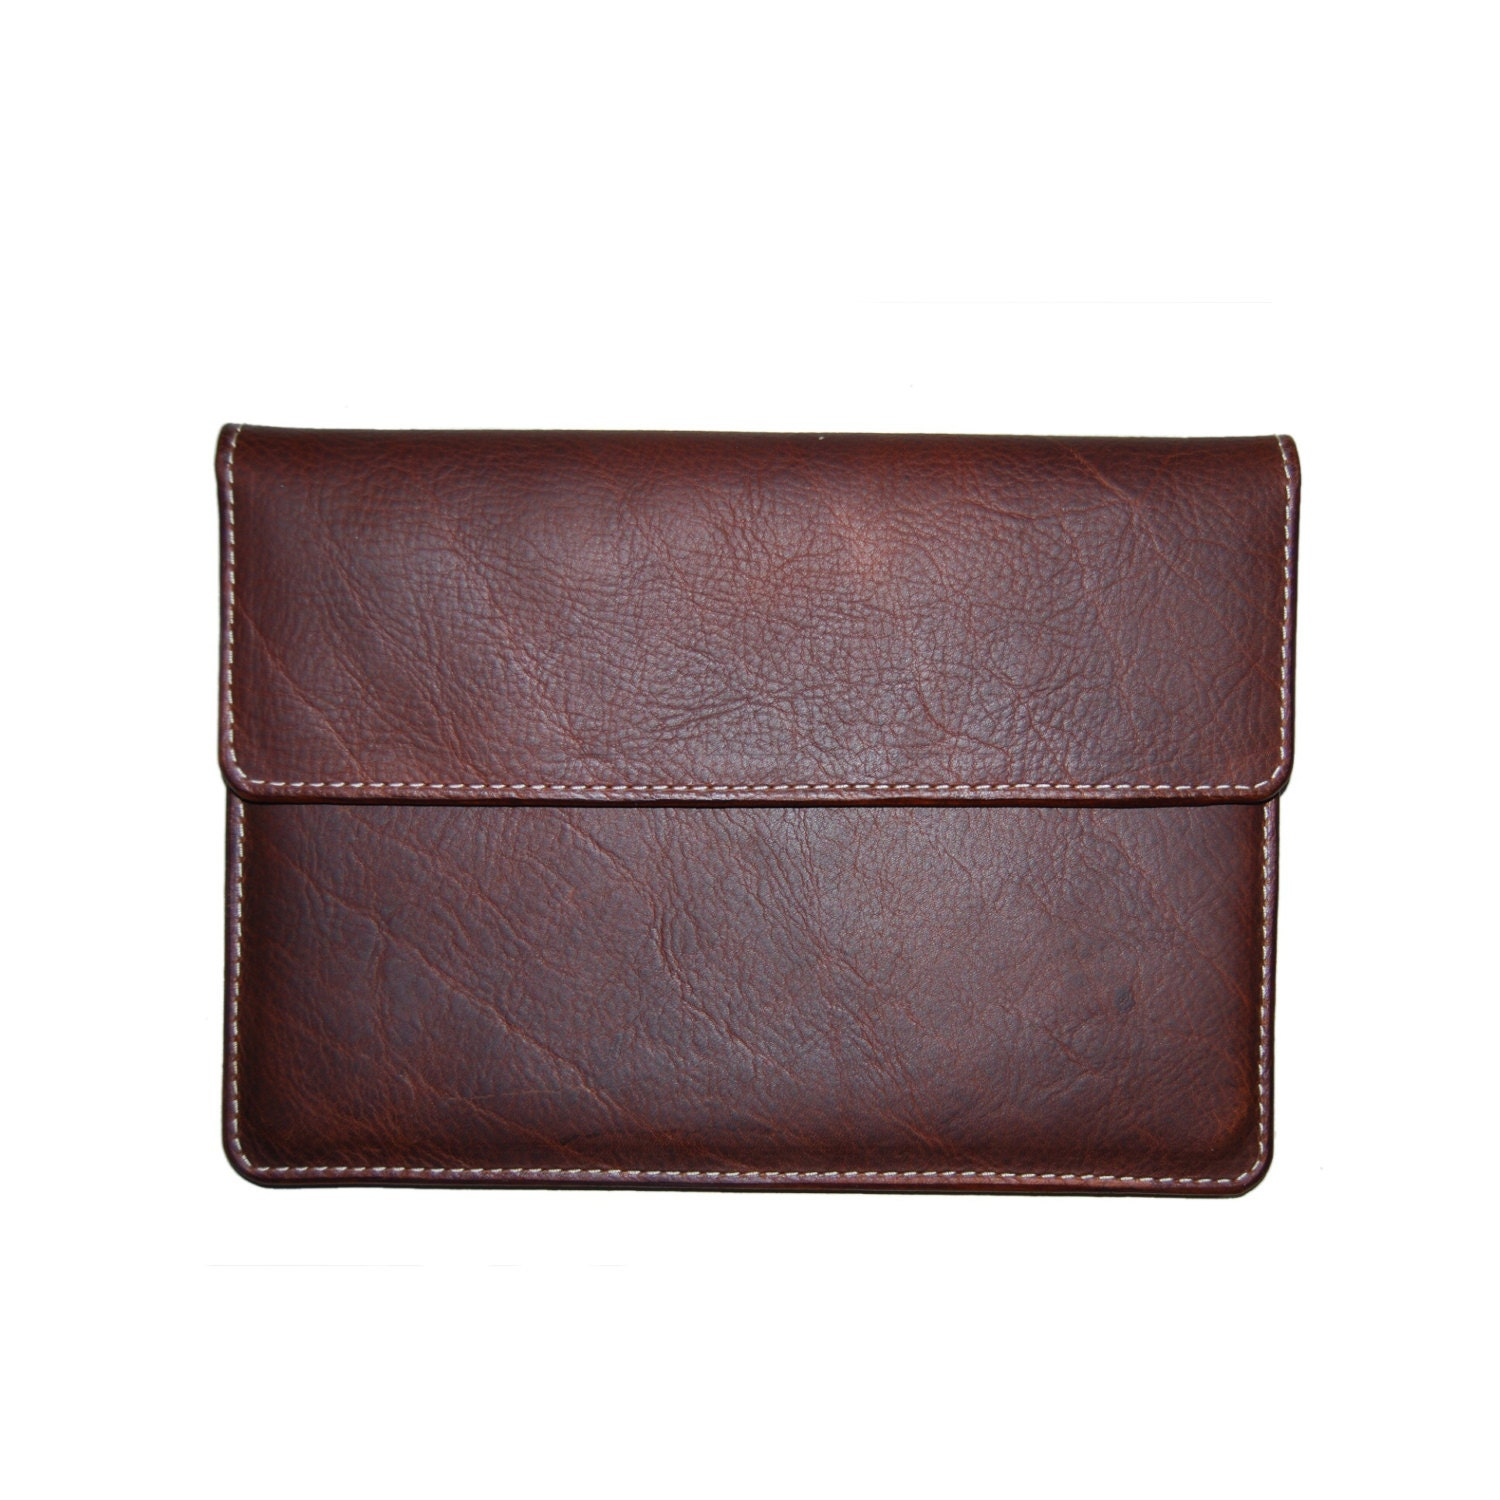 oil tanned leather ipad air 2 case sleeve holder by chiquefabrique